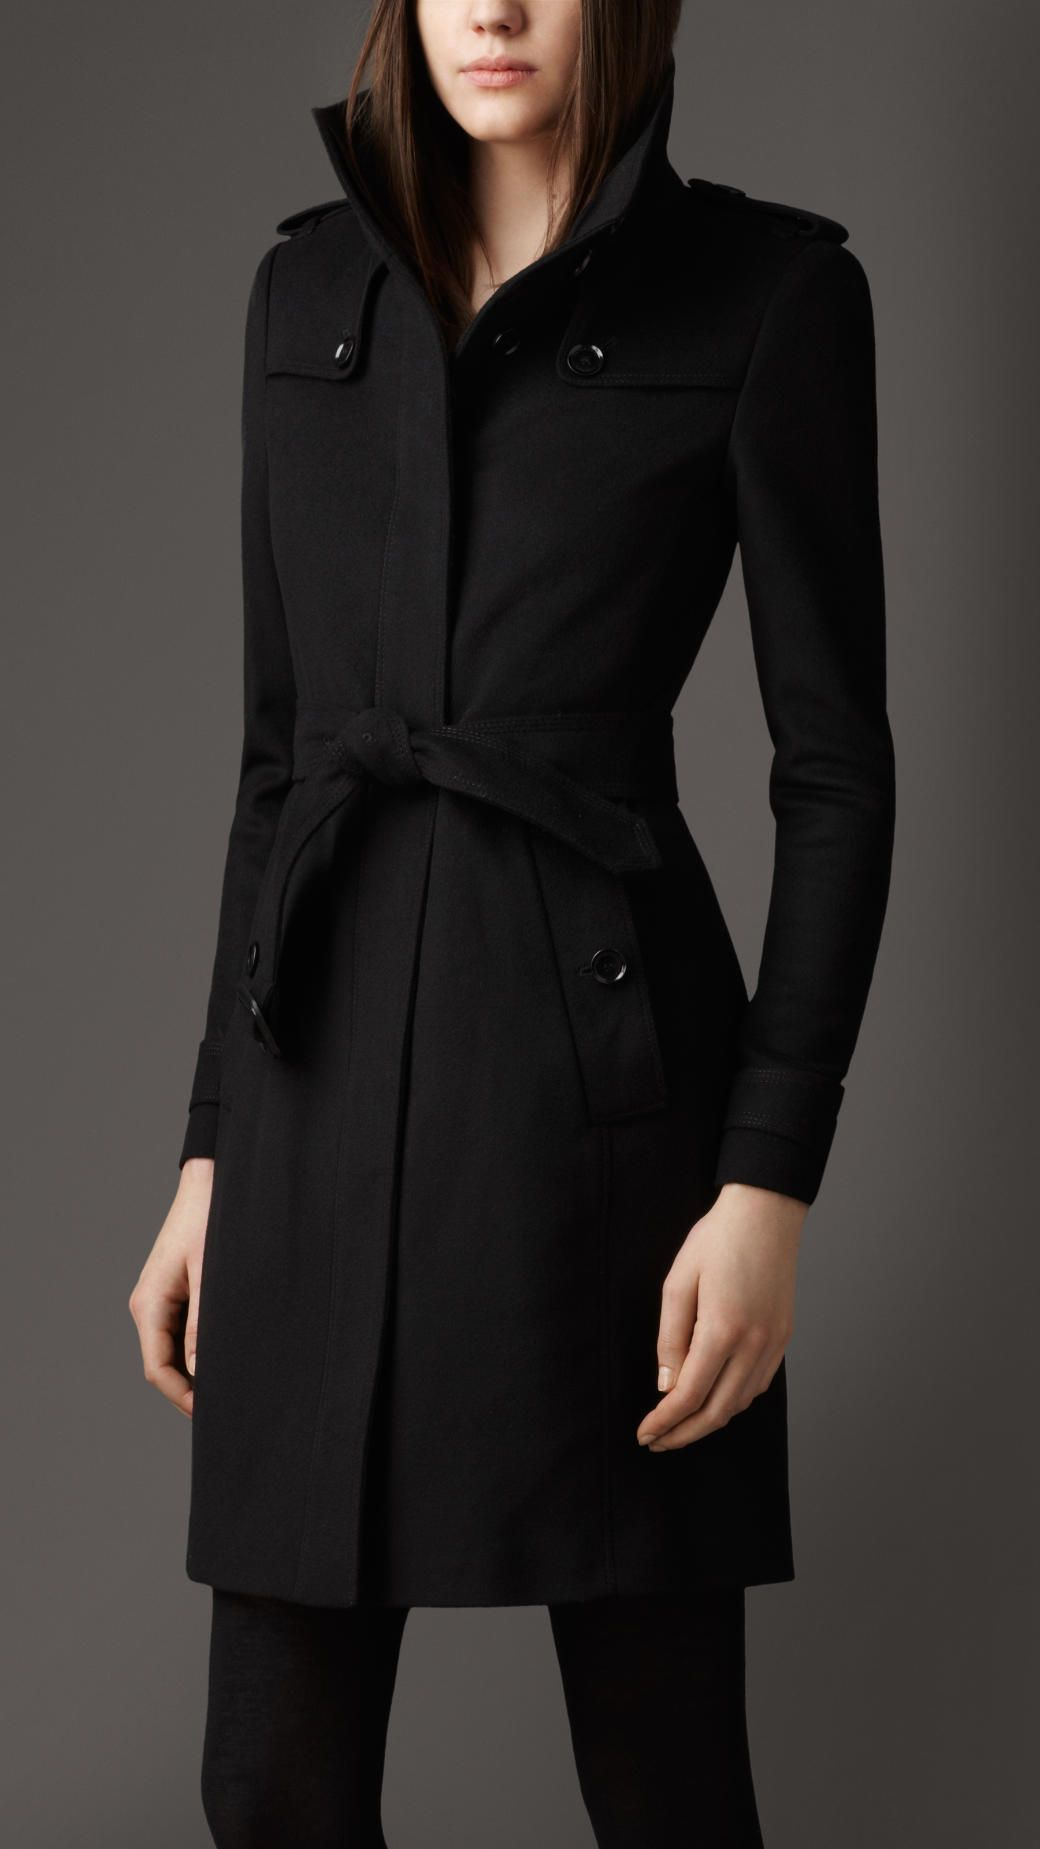 Wool / Cashmere Coat | WE Apparel | Pinterest | Coats, Wool and Track